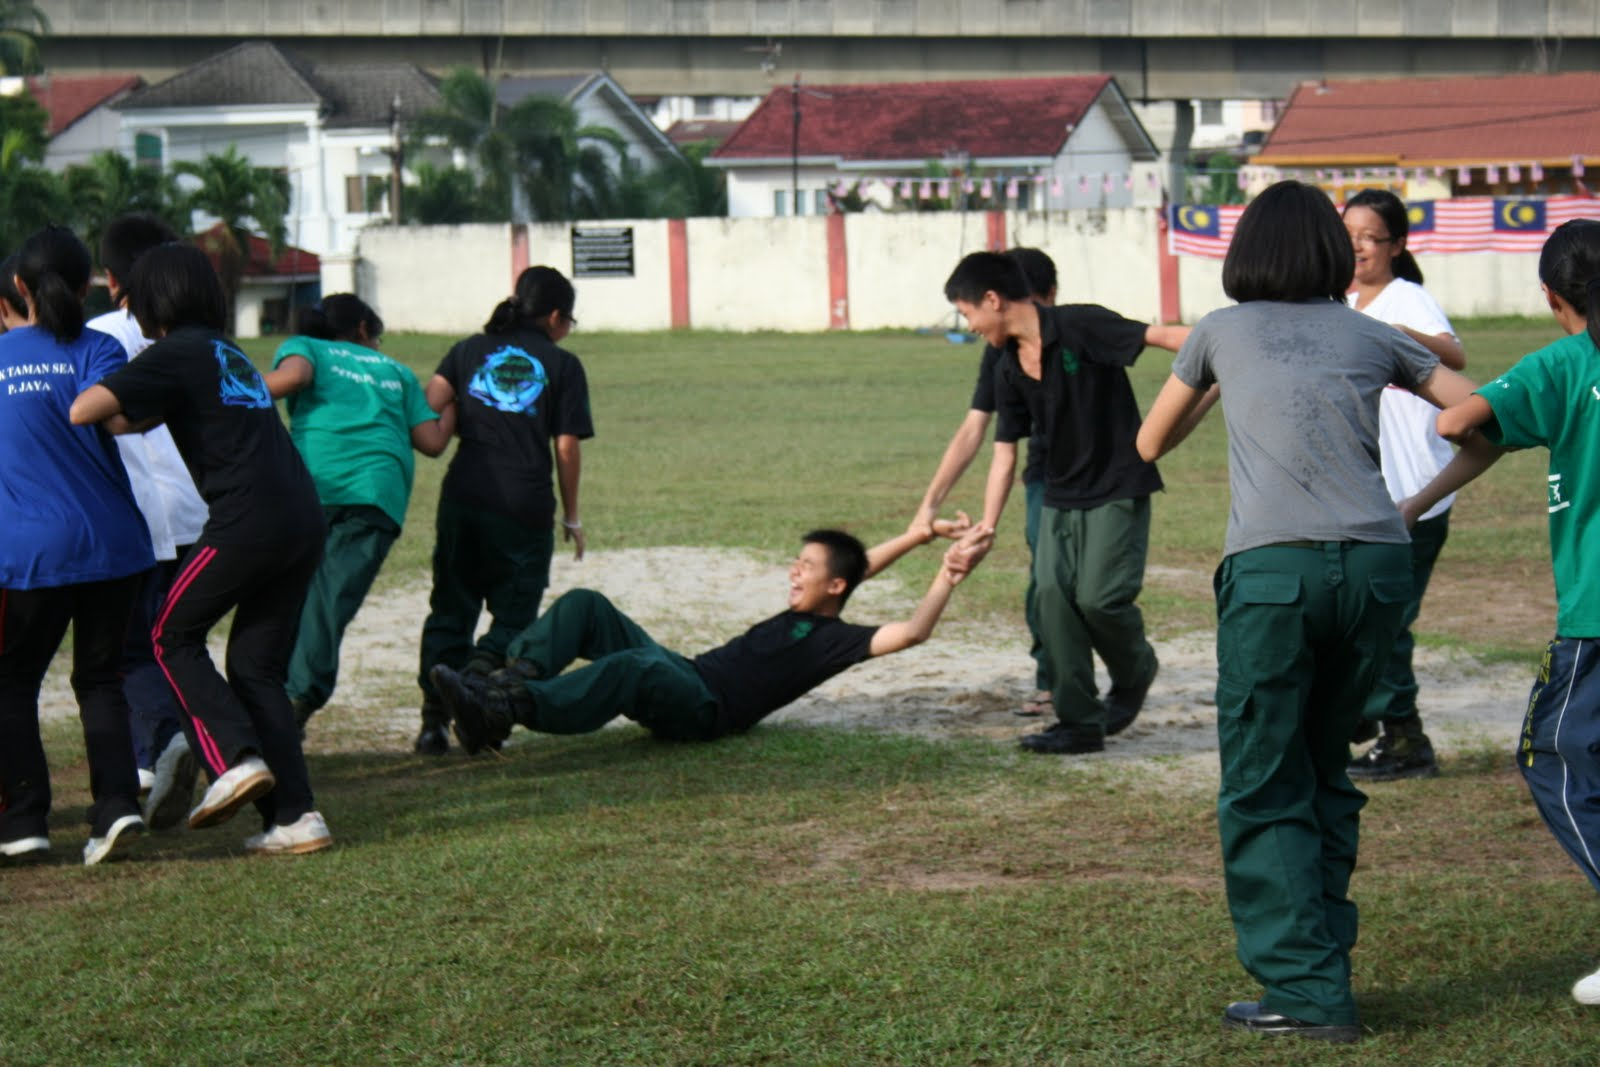 kadet remaja sekolah smk taman sea wrong examples of teamwork d you can do better guys